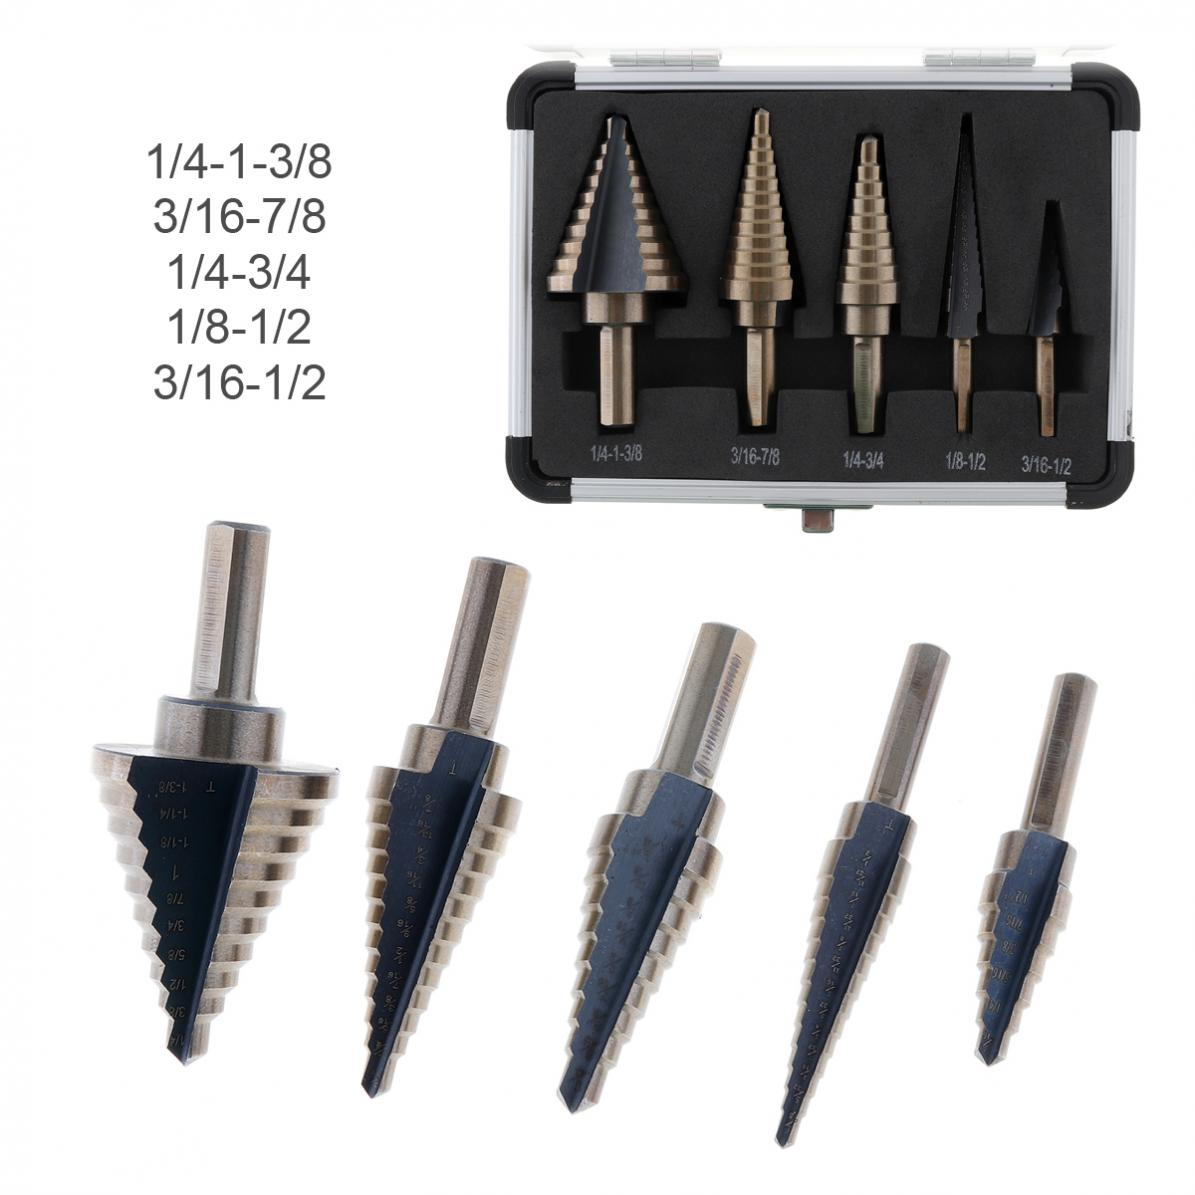 5pcs HSS Steel Step Drill Bit Set Cone Spiral Grooved Drill Bits Multiple Hole of 1/4-1-3/8 3/16-7/8 1/4-3/4 1/8-1/2 3/16-1/2 3pcs lot hss steel large step cone titanium coated metal drill bit cut tool set hole cutter 4 12 20 32mm wholesale